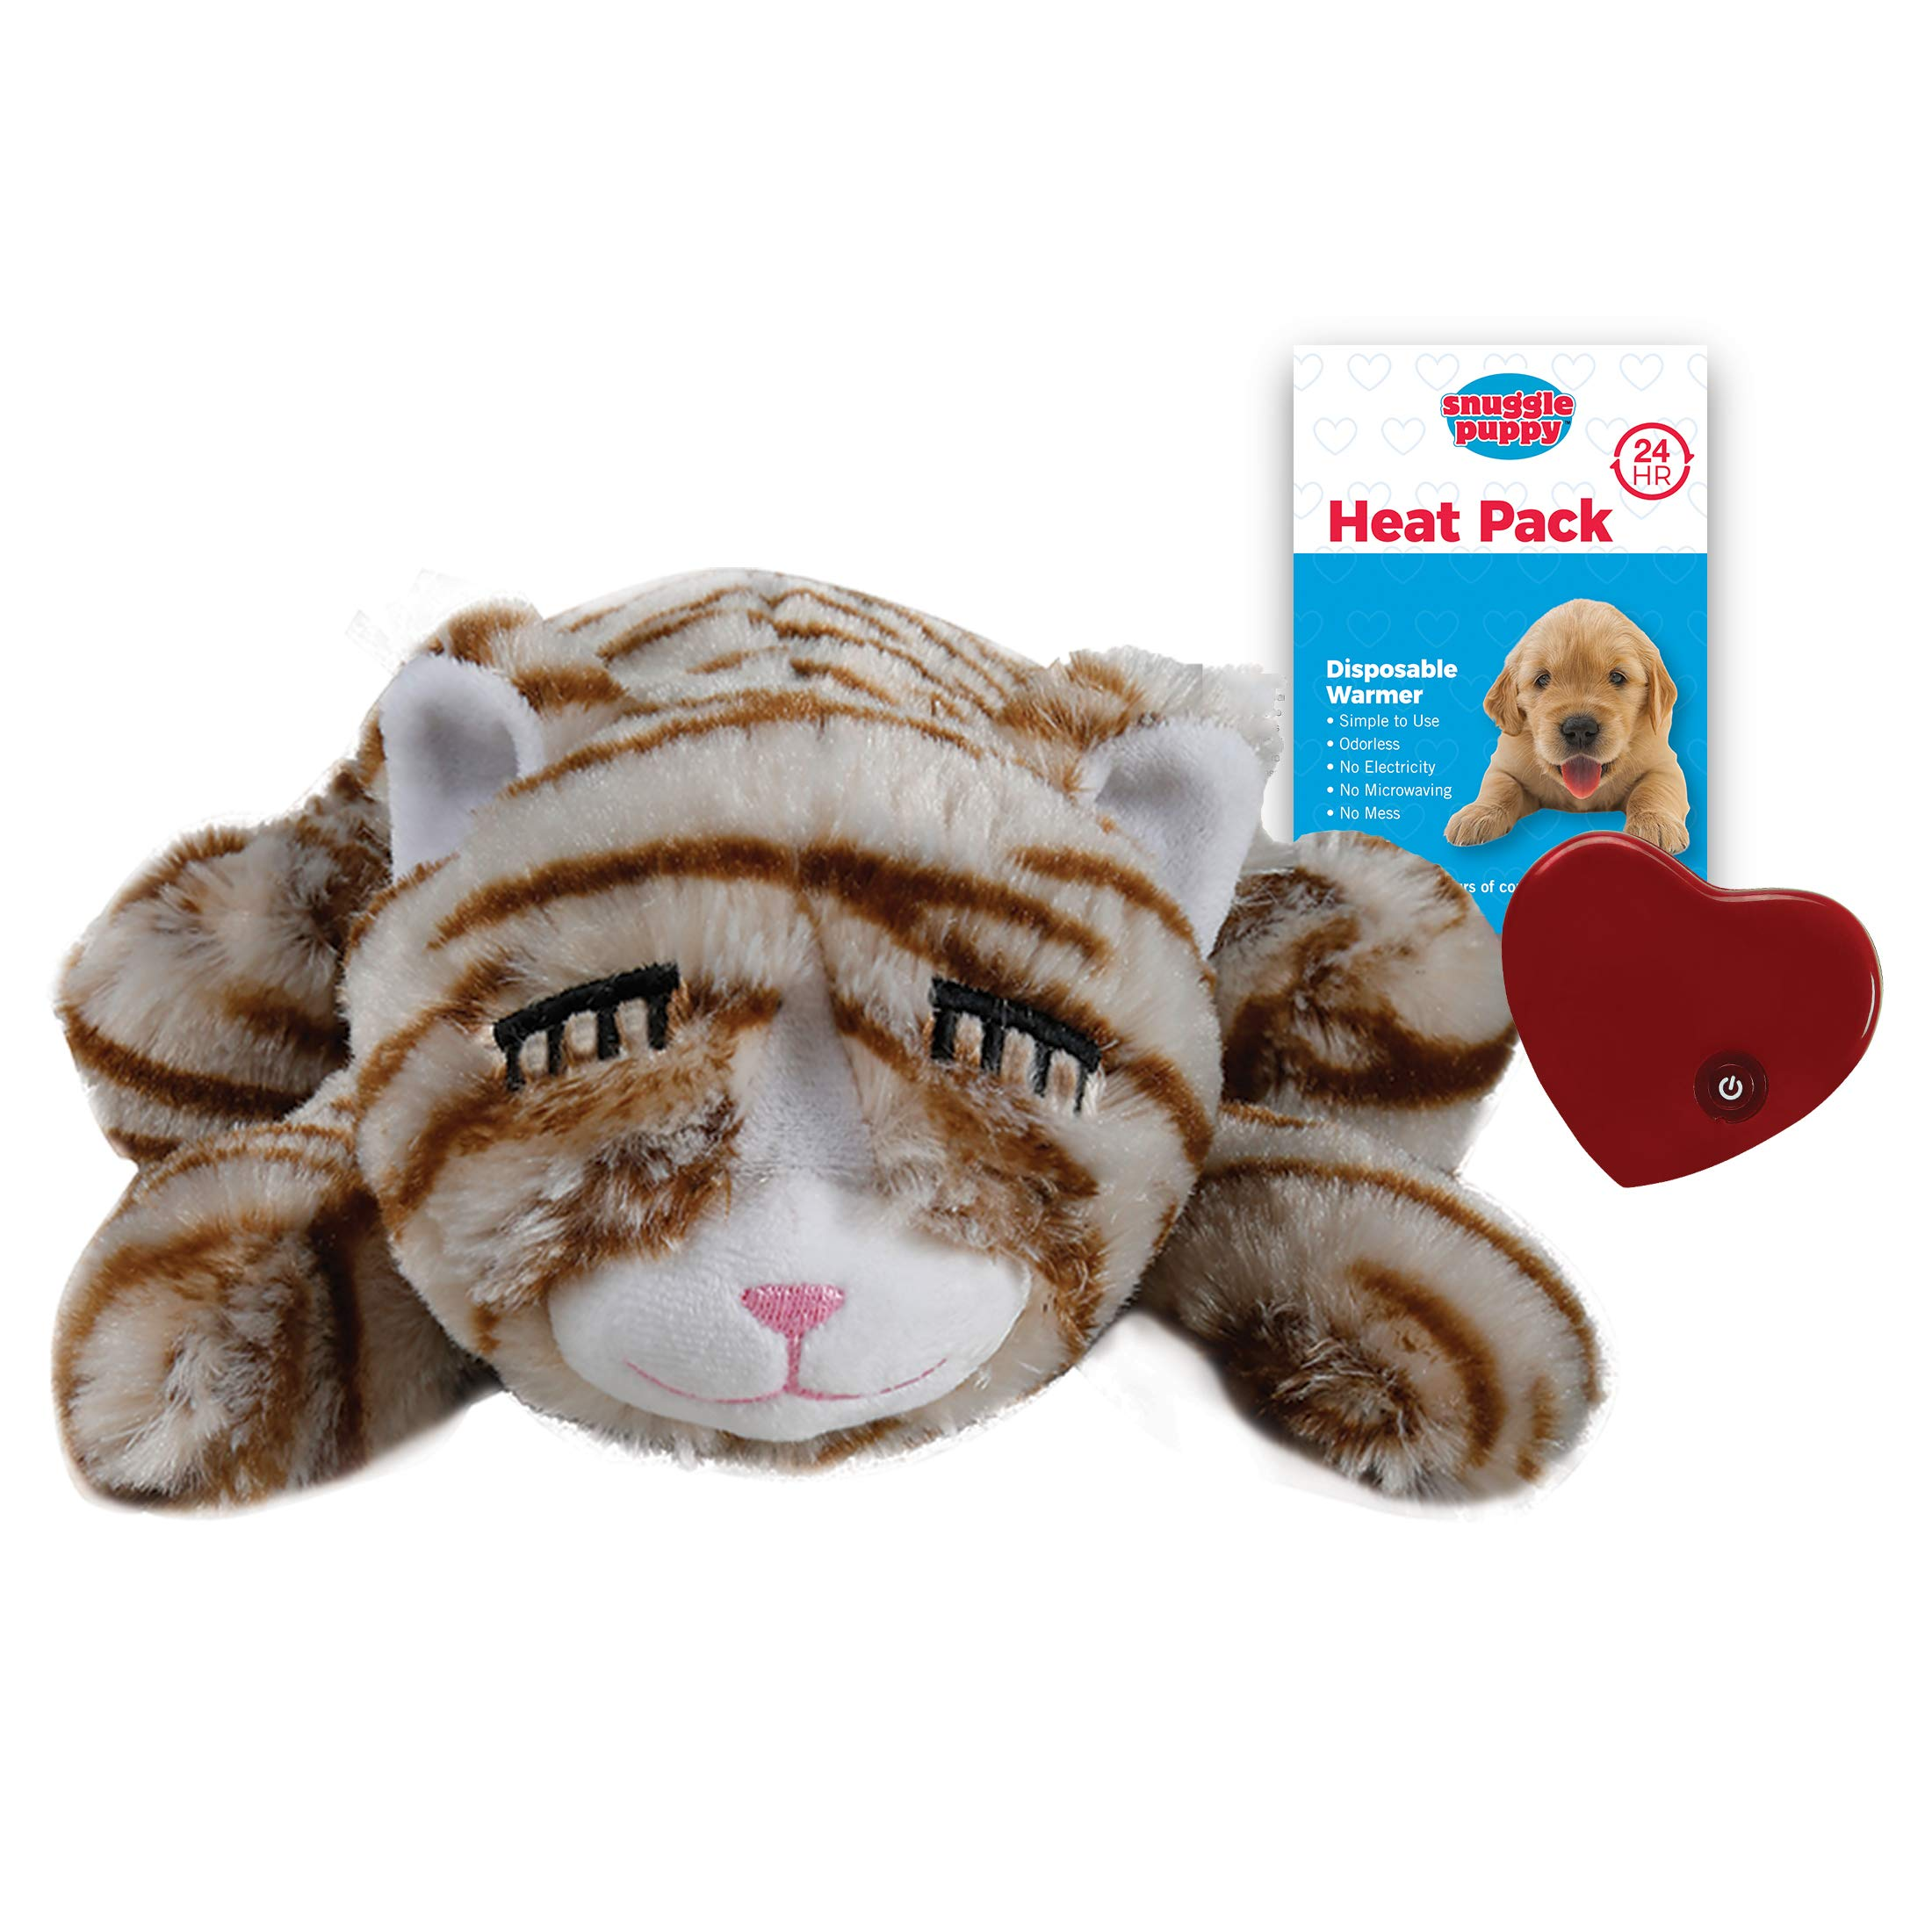 SmartPetLove - Snuggle Kitty - Behavioral Aid Toy for Pets - Tan Tiger by SnuggleKitties